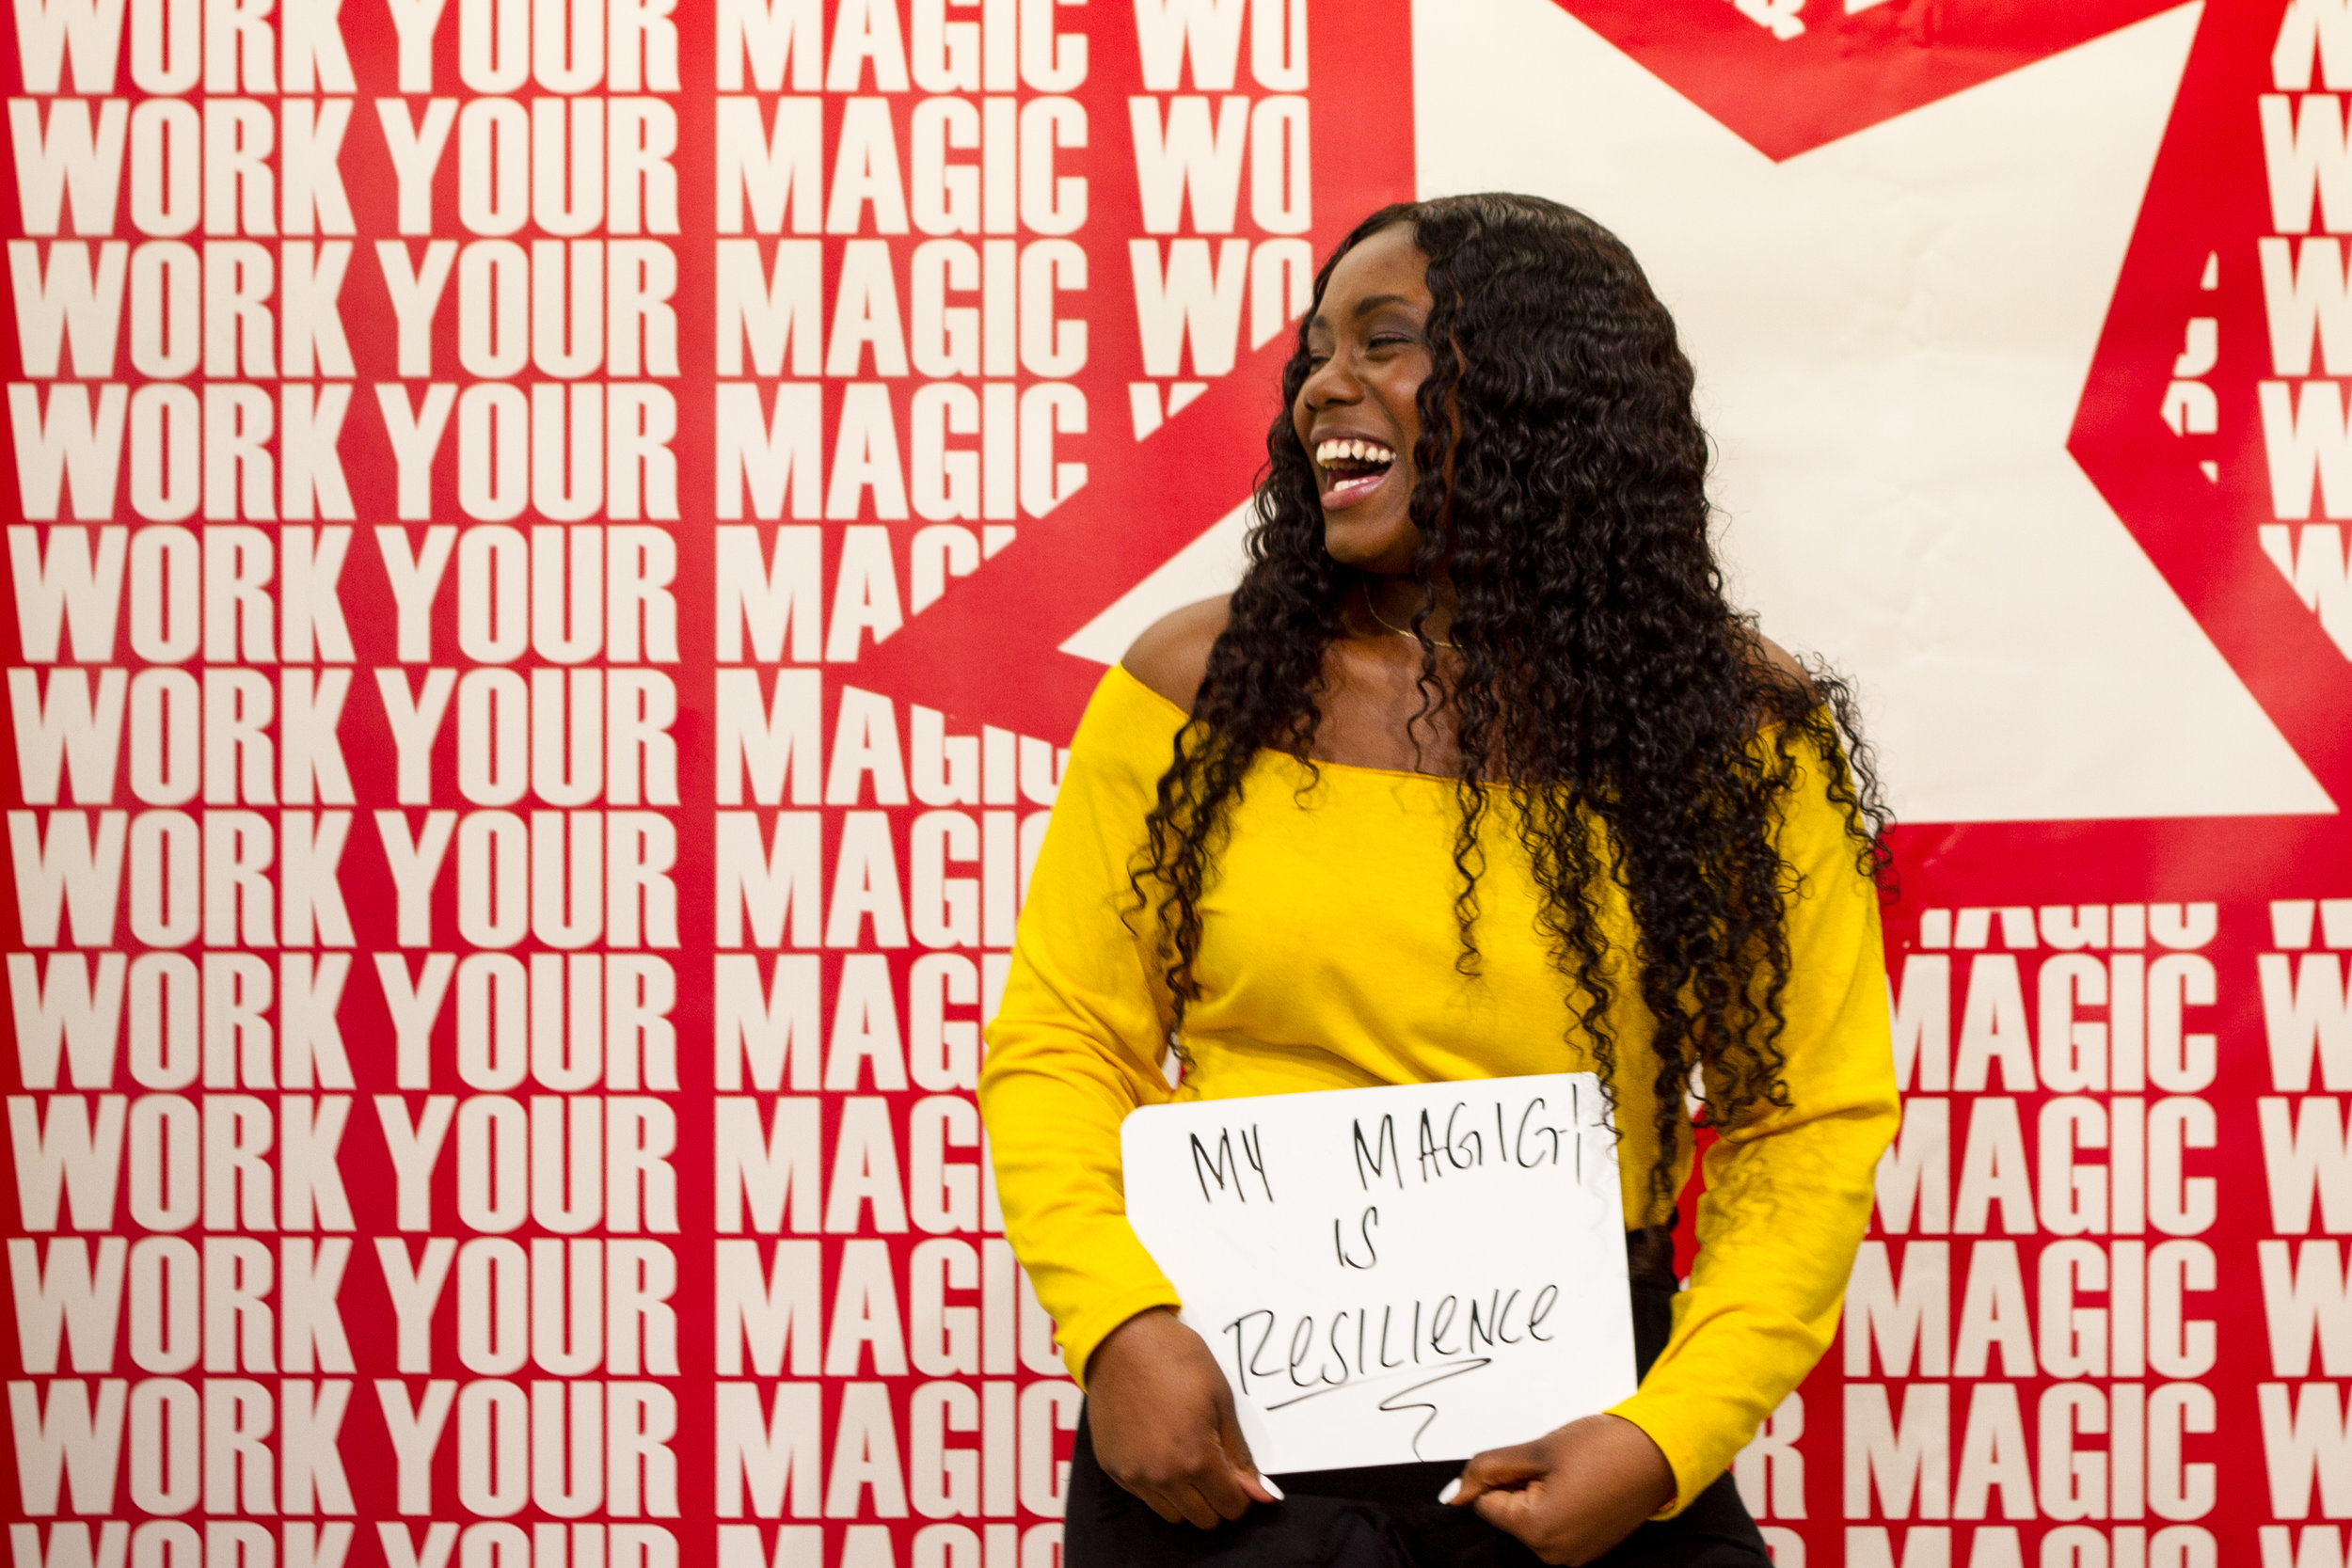 Work Your Magic, A Day of Empowerment - Through this series of events, foster youth and at-risk teens participate in a day of workshops that build confidence, inner beauty and professional skills. Inspiring role models share their stories and help every girl find her magic within.